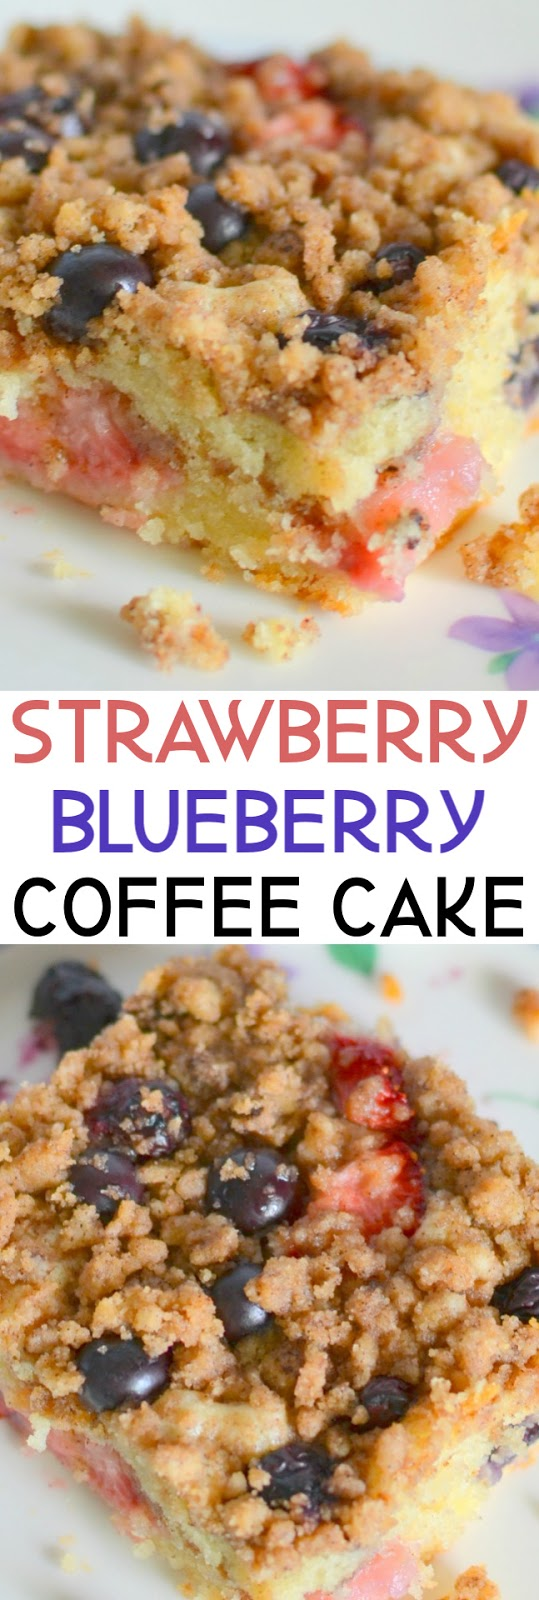 This delicious made from scratch coffee cake is packed full of berries and is great for dessert, brunch or breakfast! Also delicious with blackberries, raspberries, cherries or cranberries! Try this cake and it will be a new family favorite!